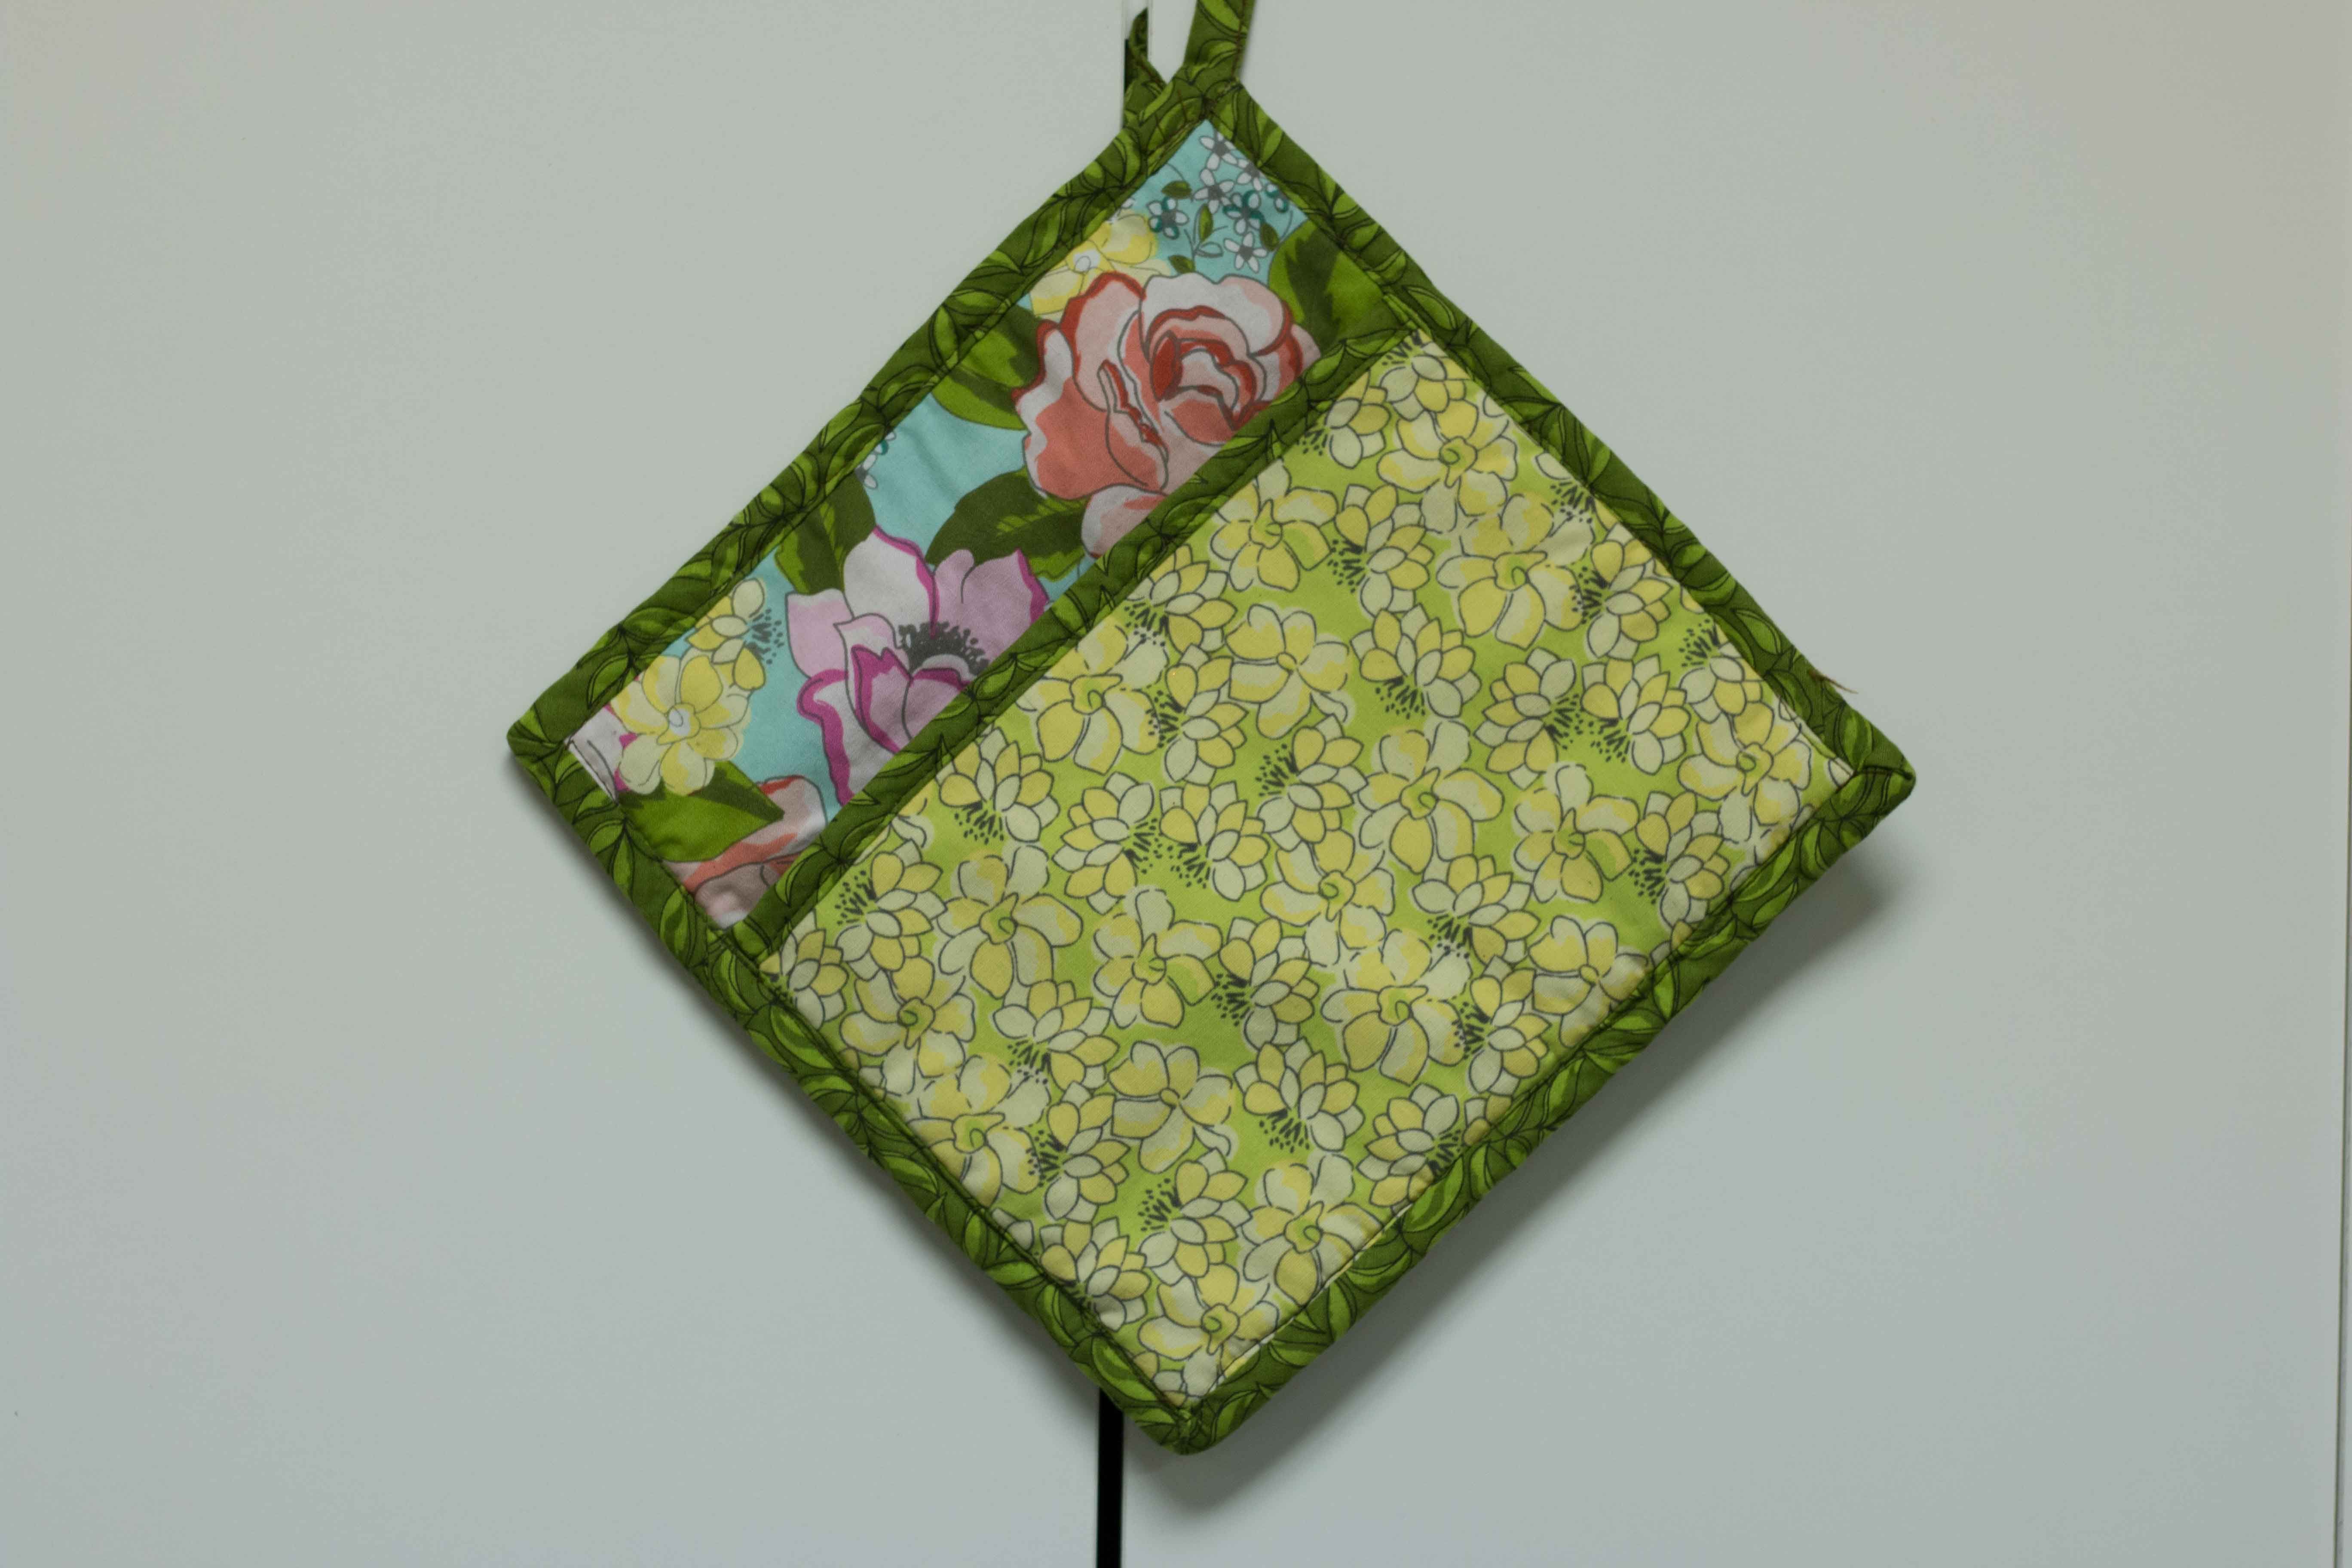 Green and floral print pot holder